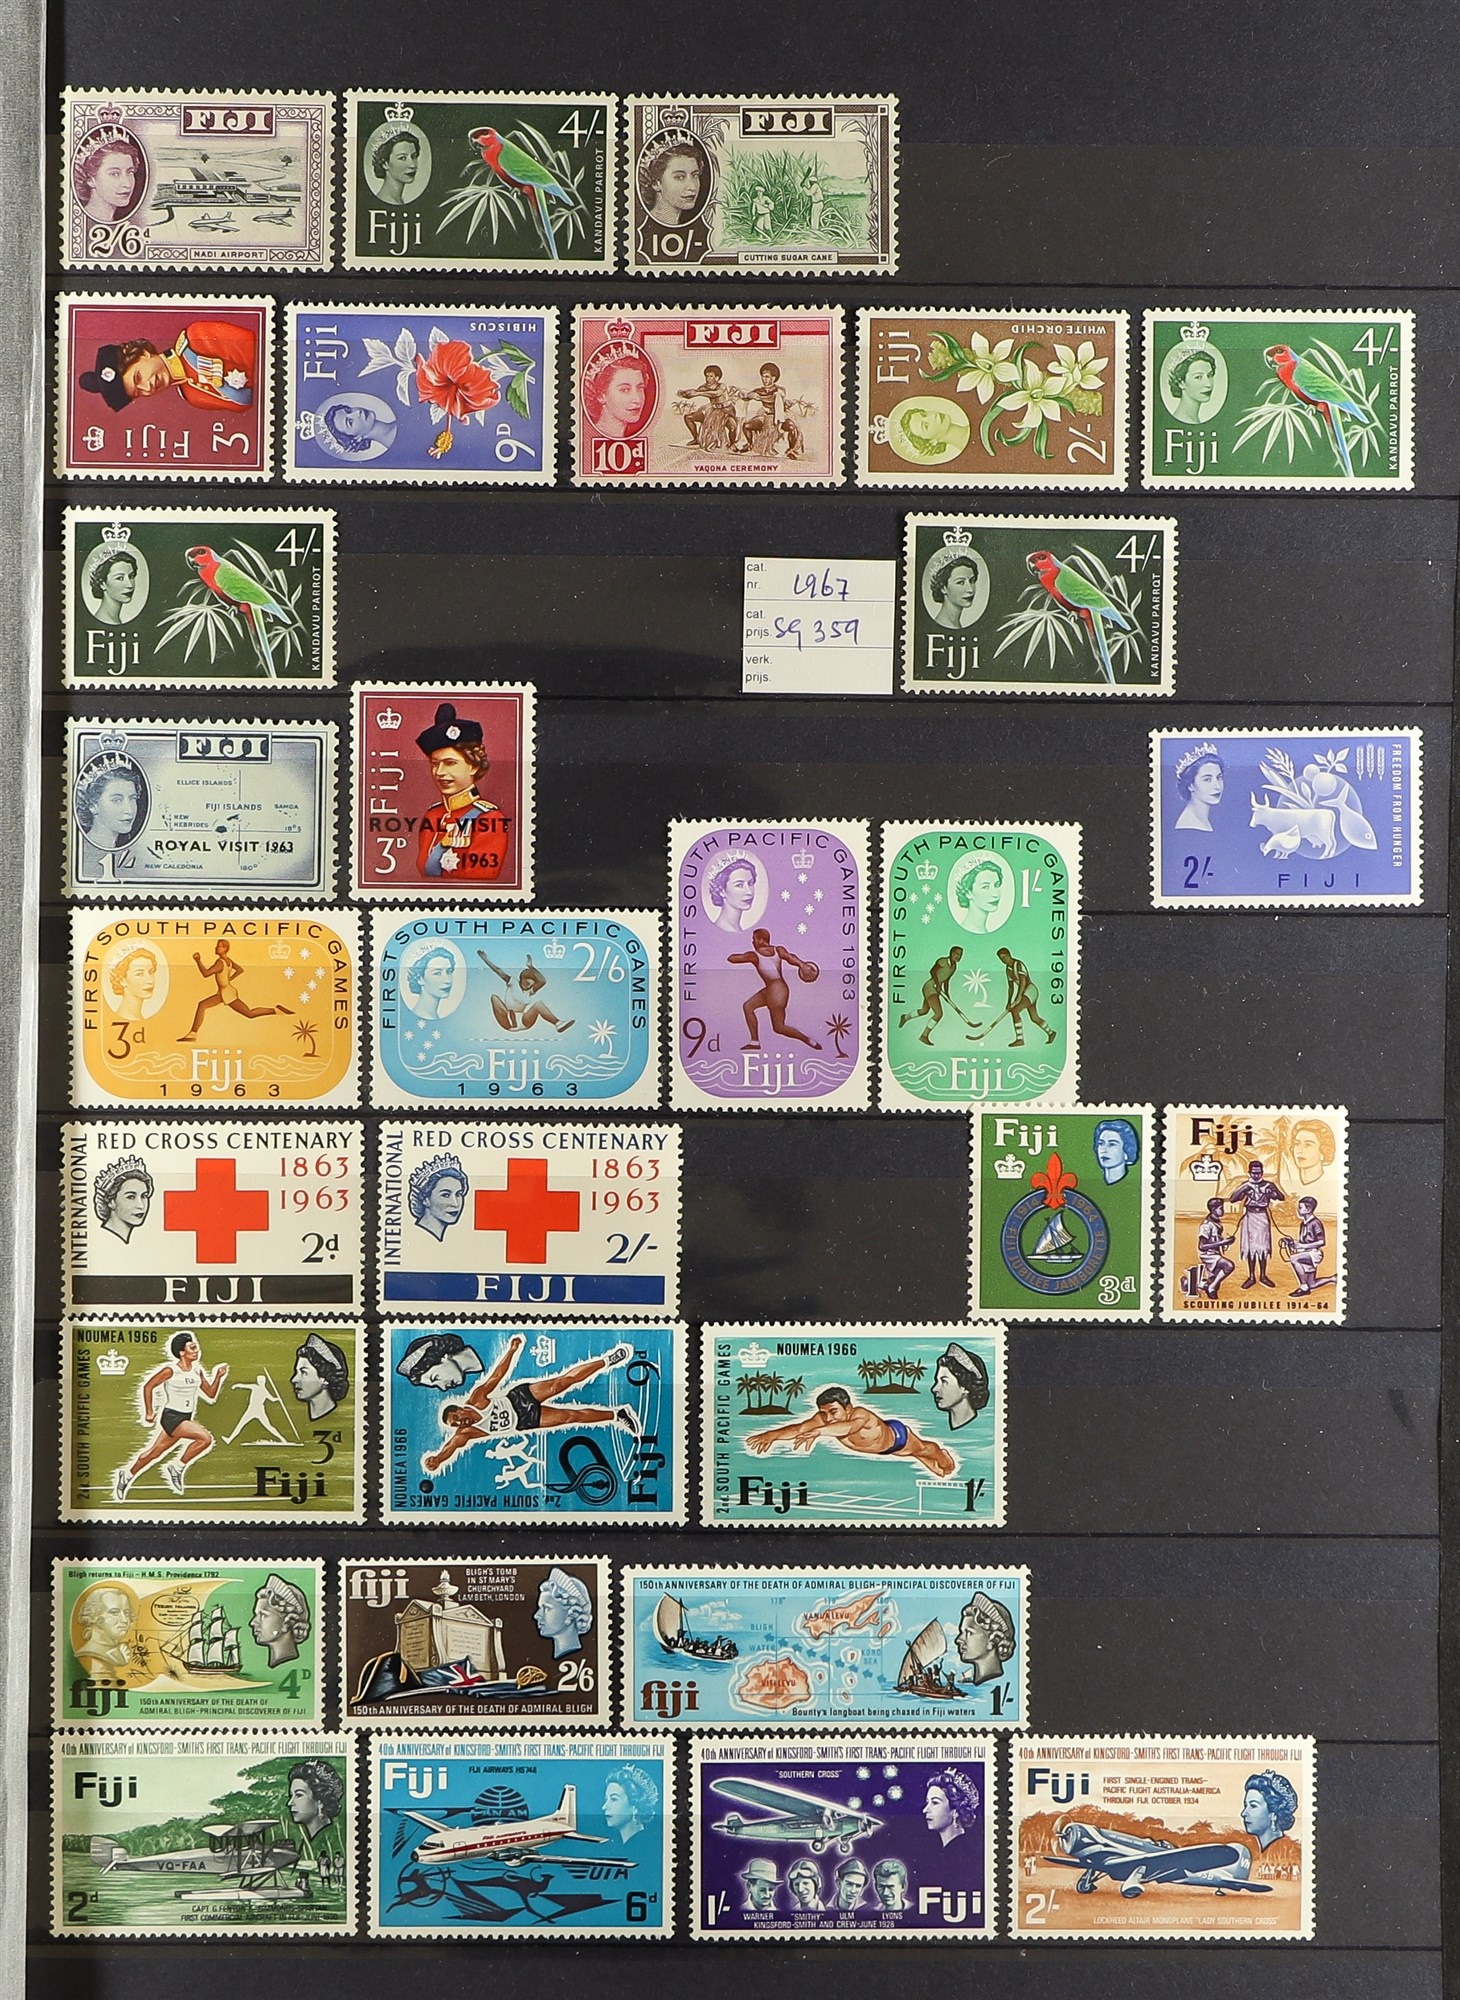 FIJI 1903-70 FINE MINT COLLECTION incl. 1903 set to 5d (excl. ½d), 1904-09 ½d & 1d, 1906-12 to 2½ - Image 7 of 9